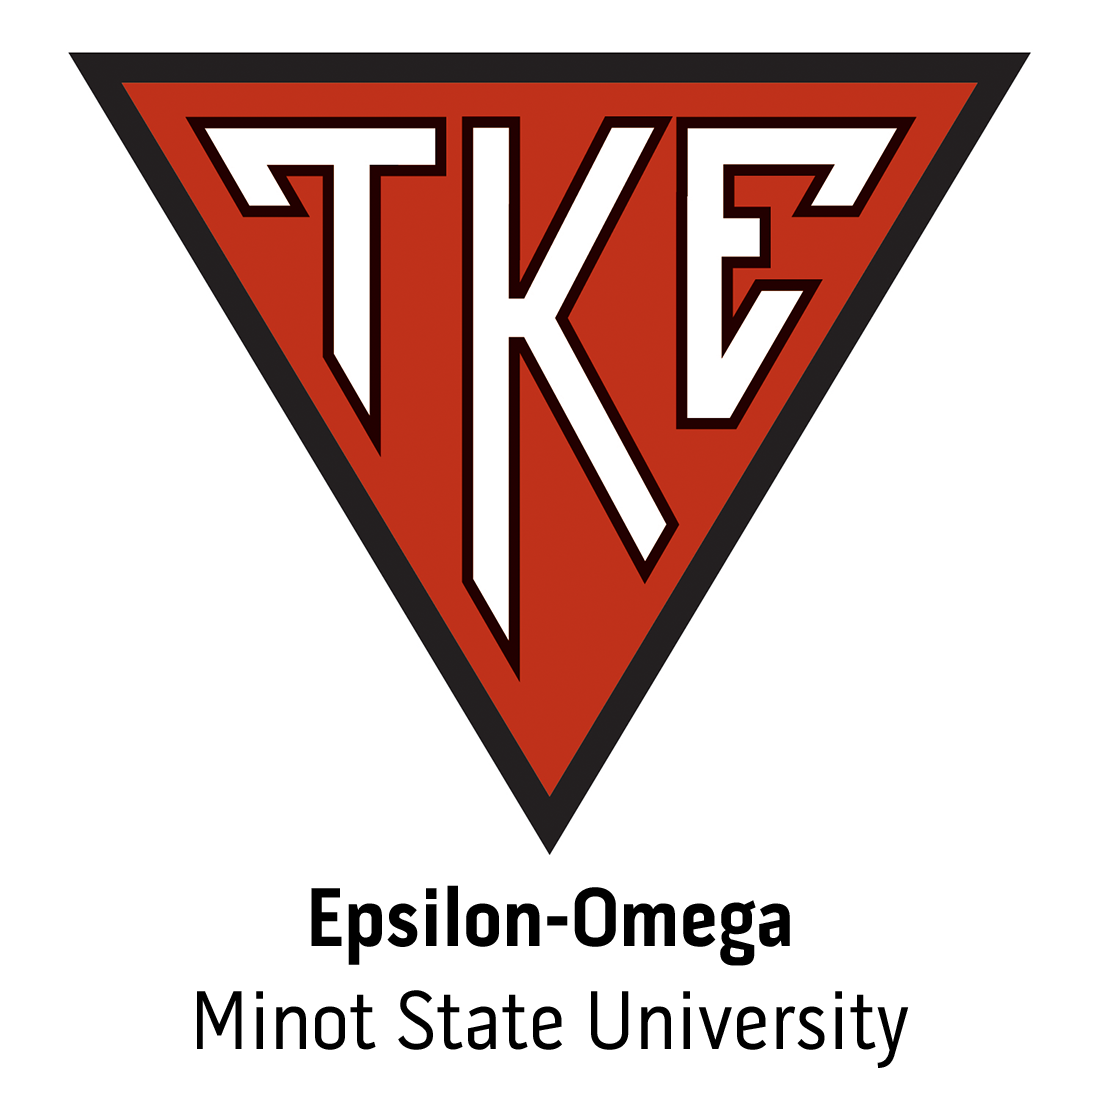 Epsilon-Omega Chapter at Minot State University